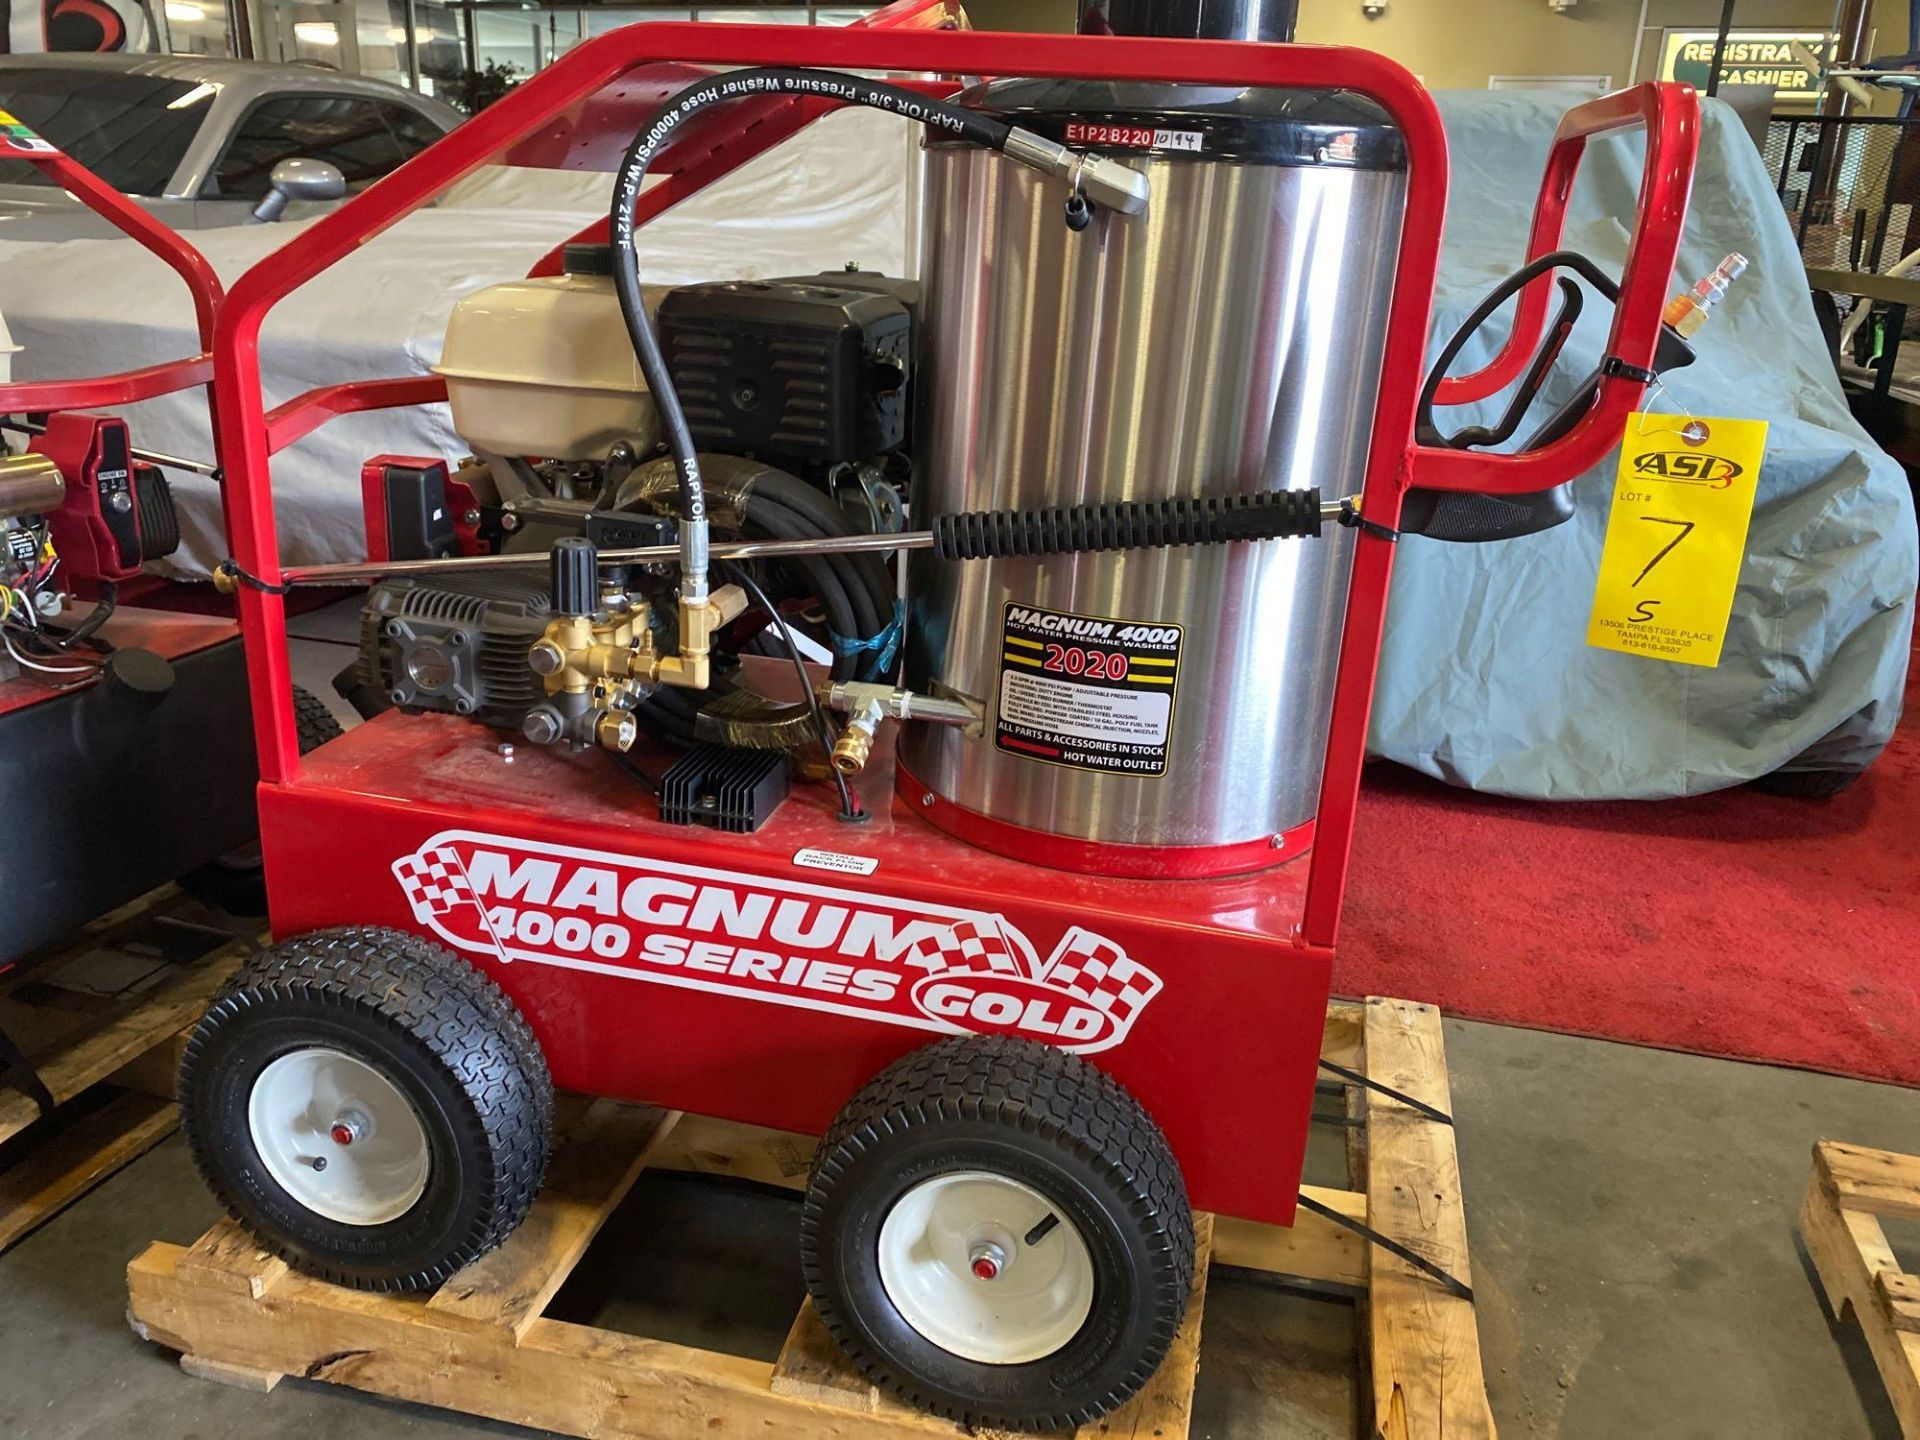 Lot 7 - NEW/UNUSED 2020 MAGNUM 4000 HEATED PRESSURE WASHER, ELECTRIC START